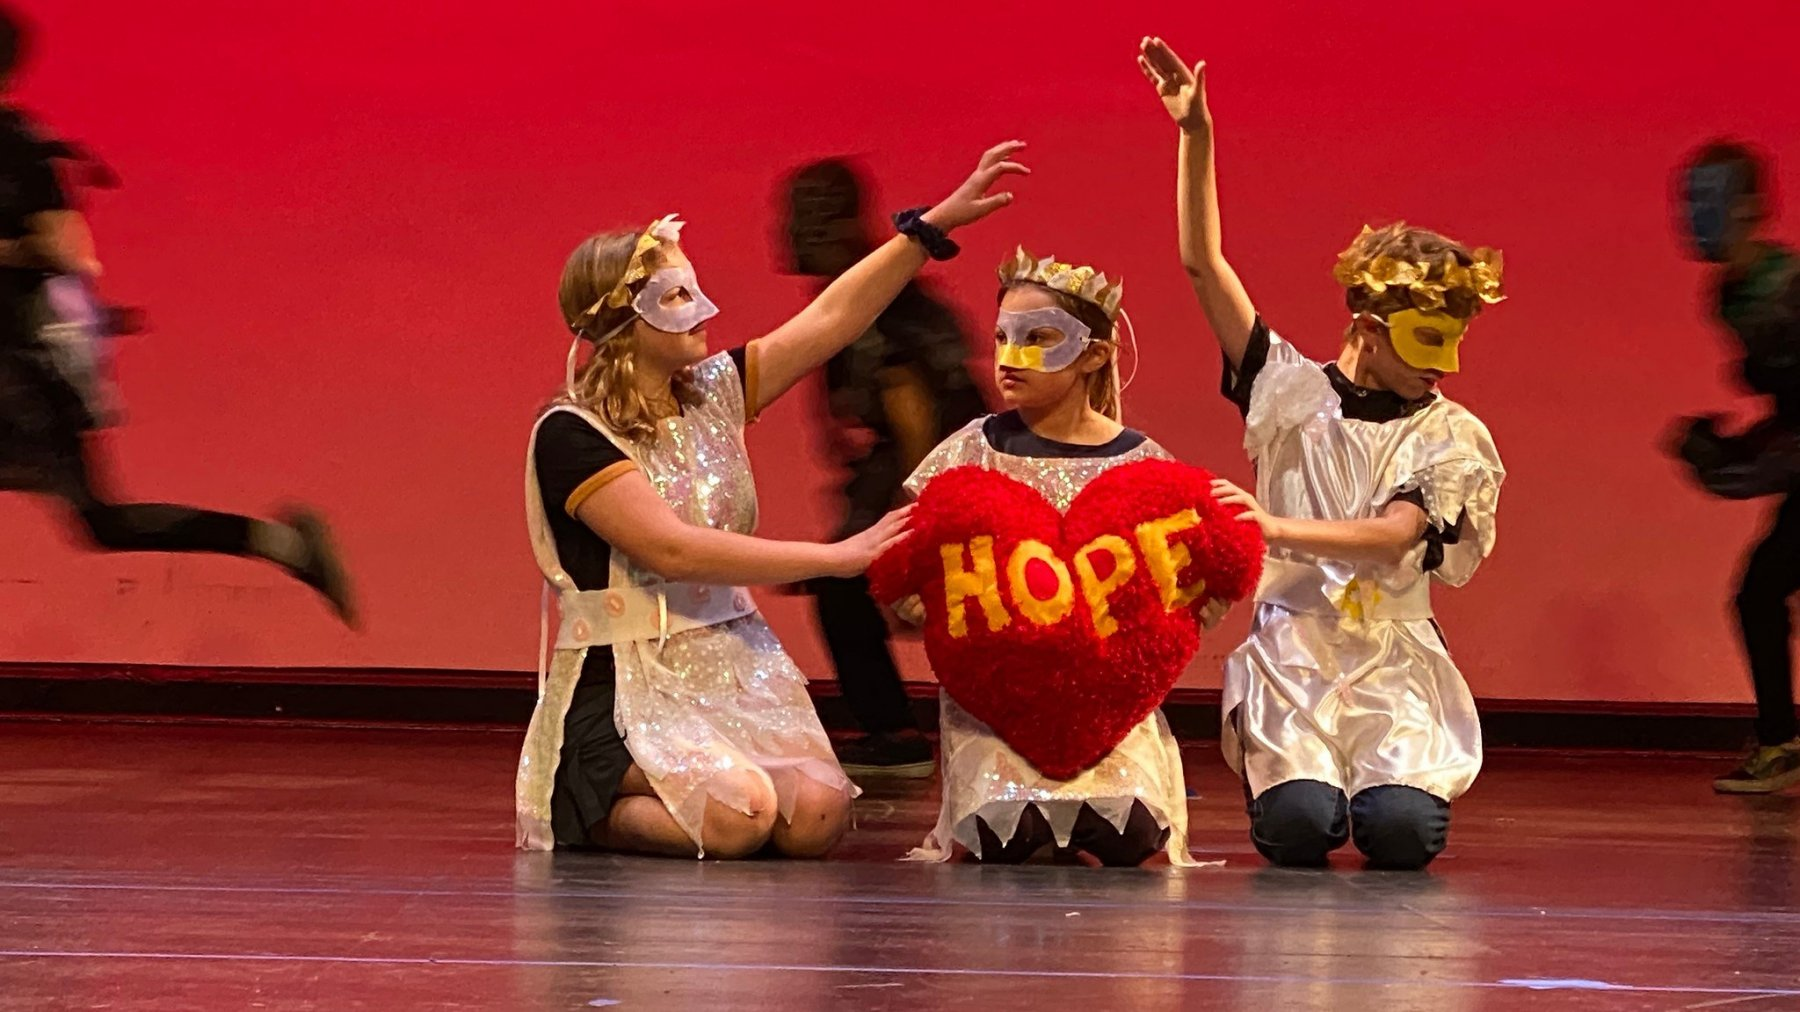 ES holiday show performance hope